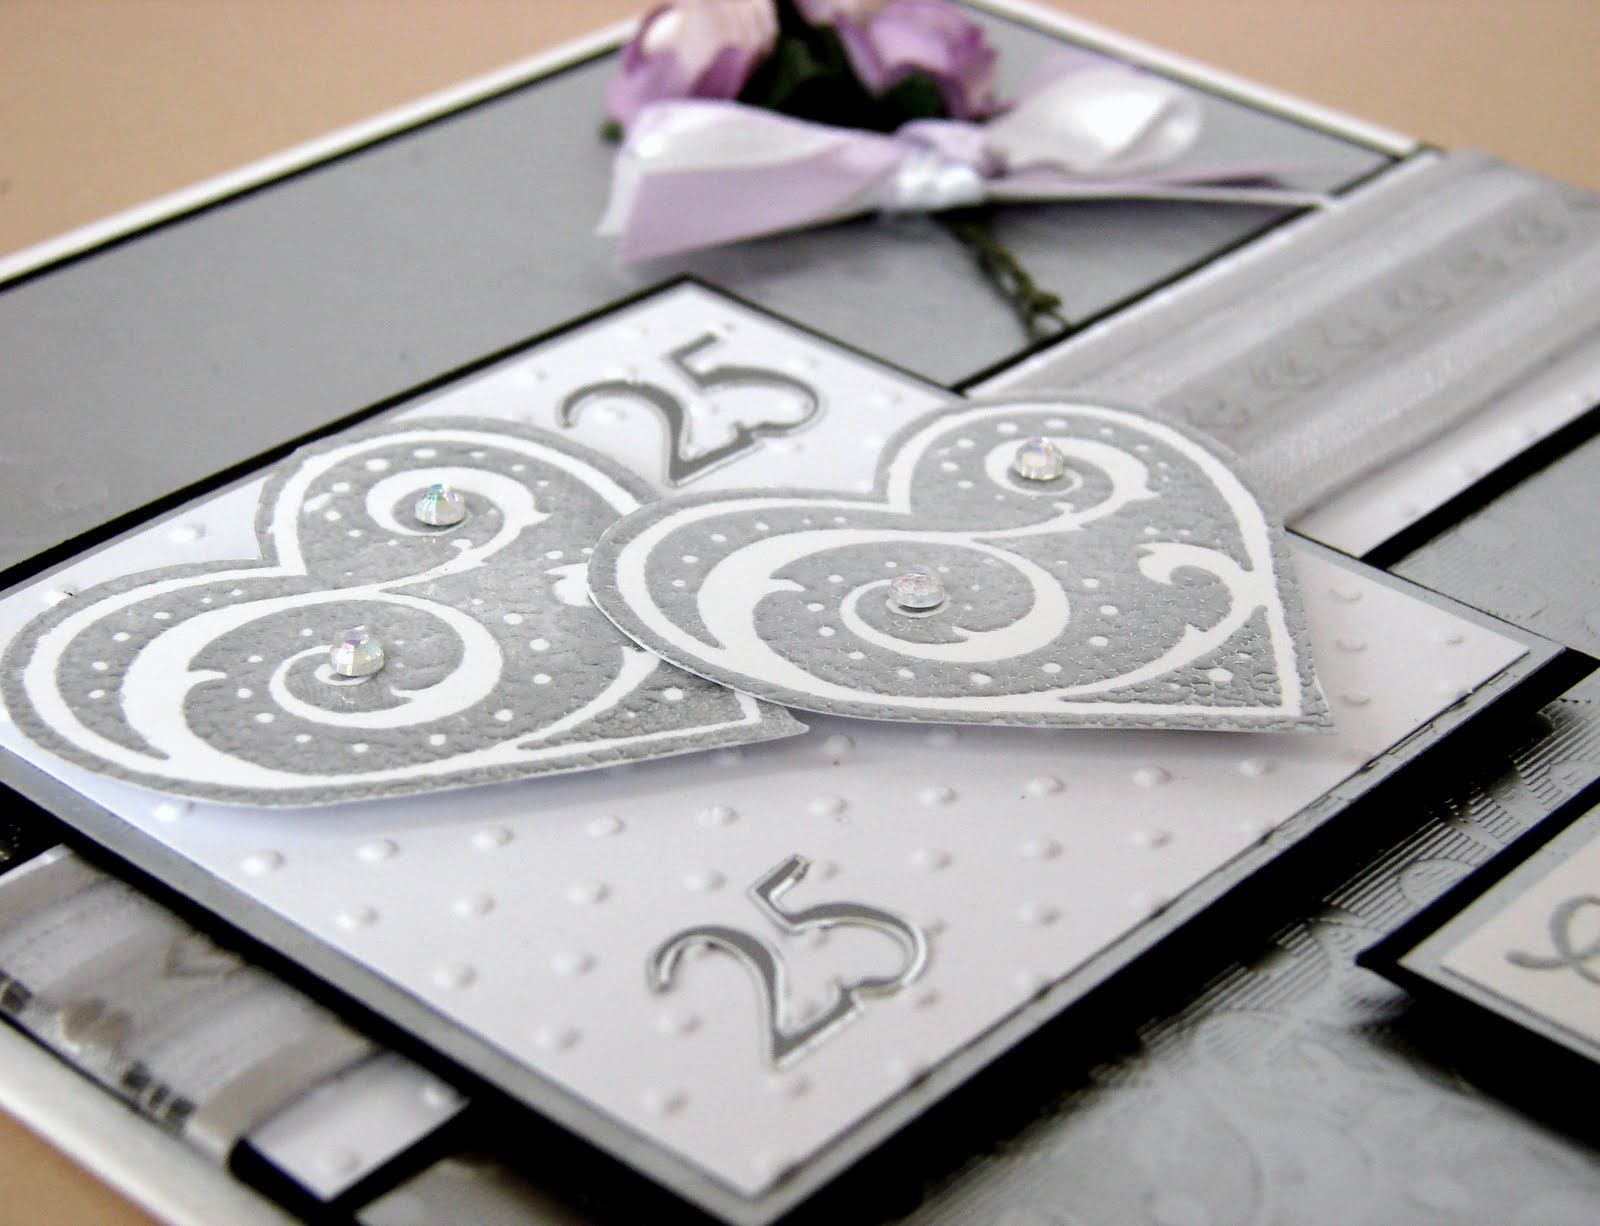 Remarkable 25 Wedding Anniversary Gifts For Parents And Silver Gift Ideas